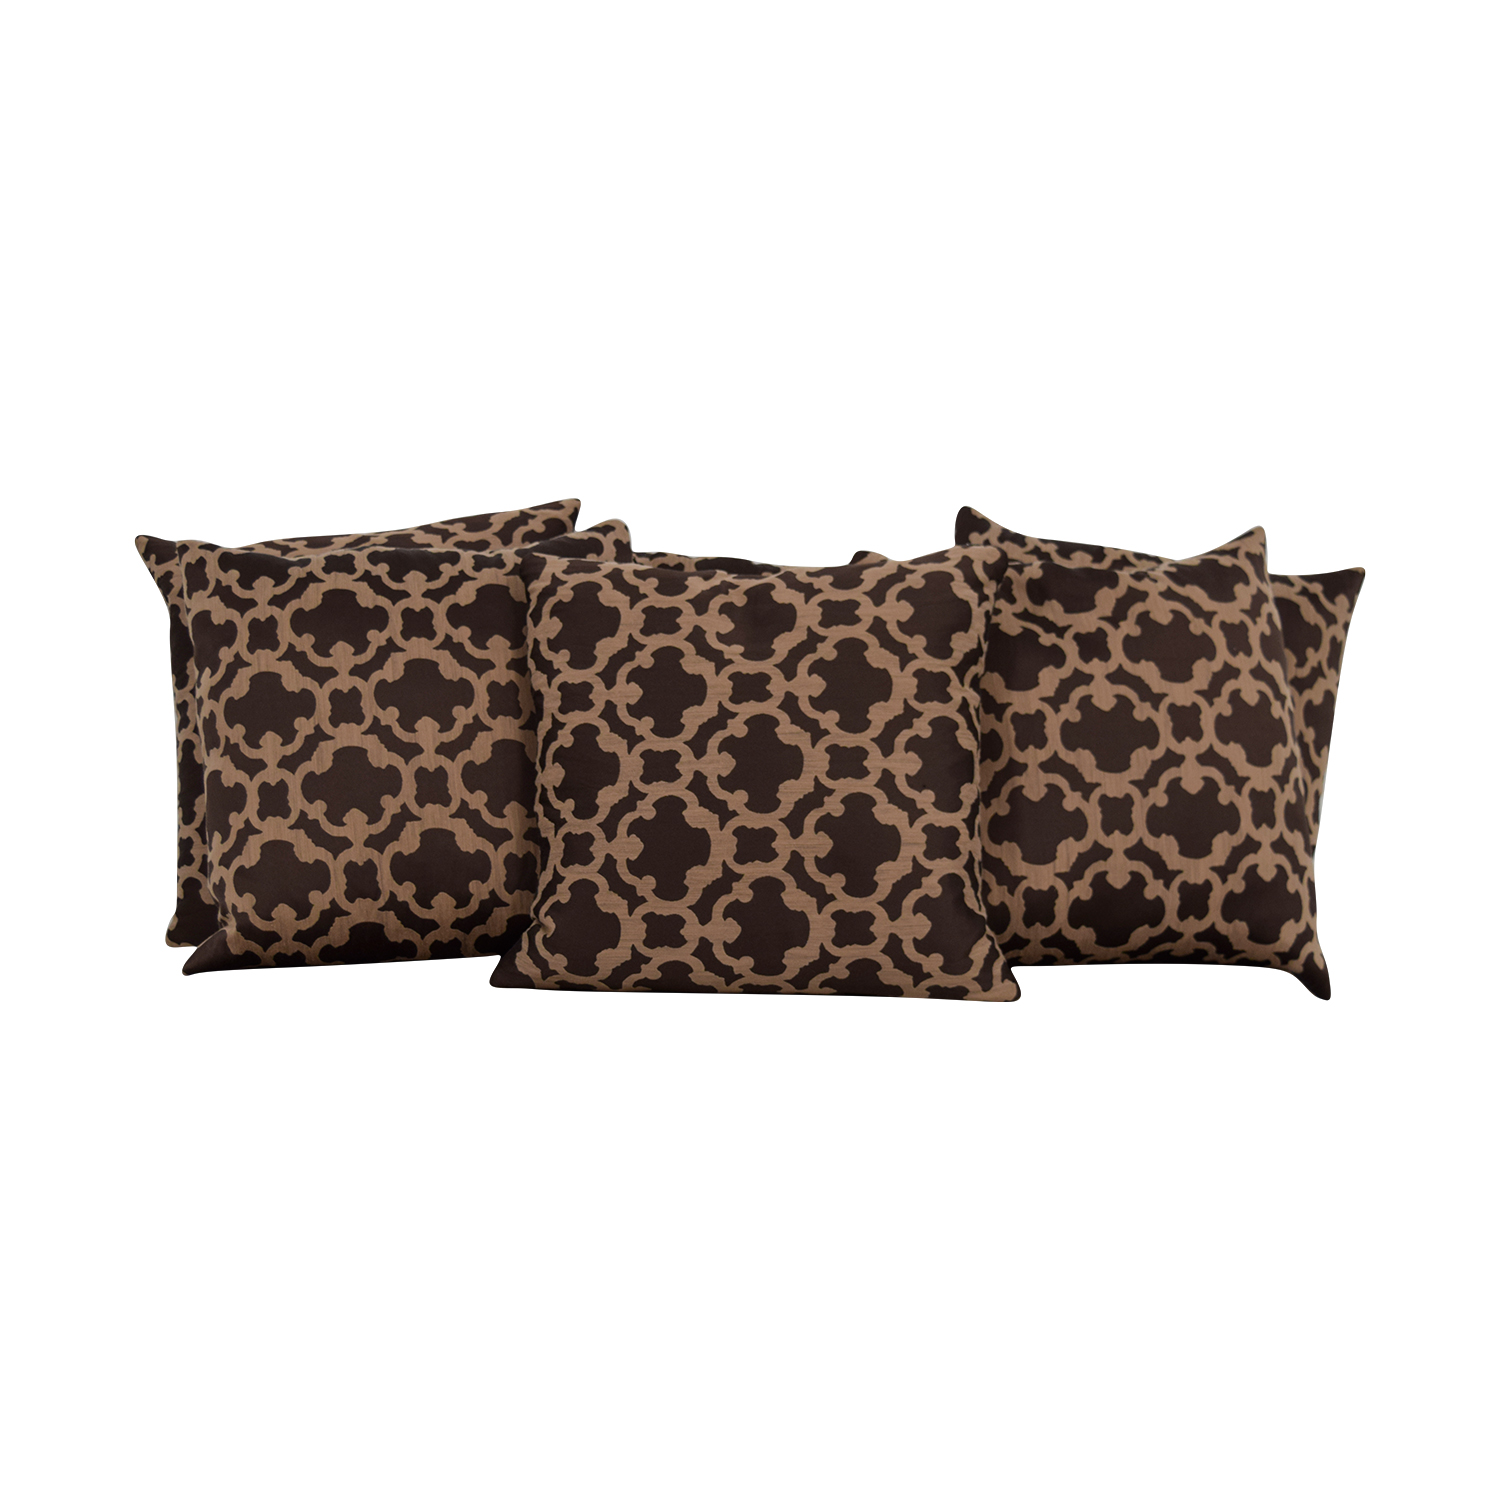 Macys Brown and Beige Throw Pillows sale